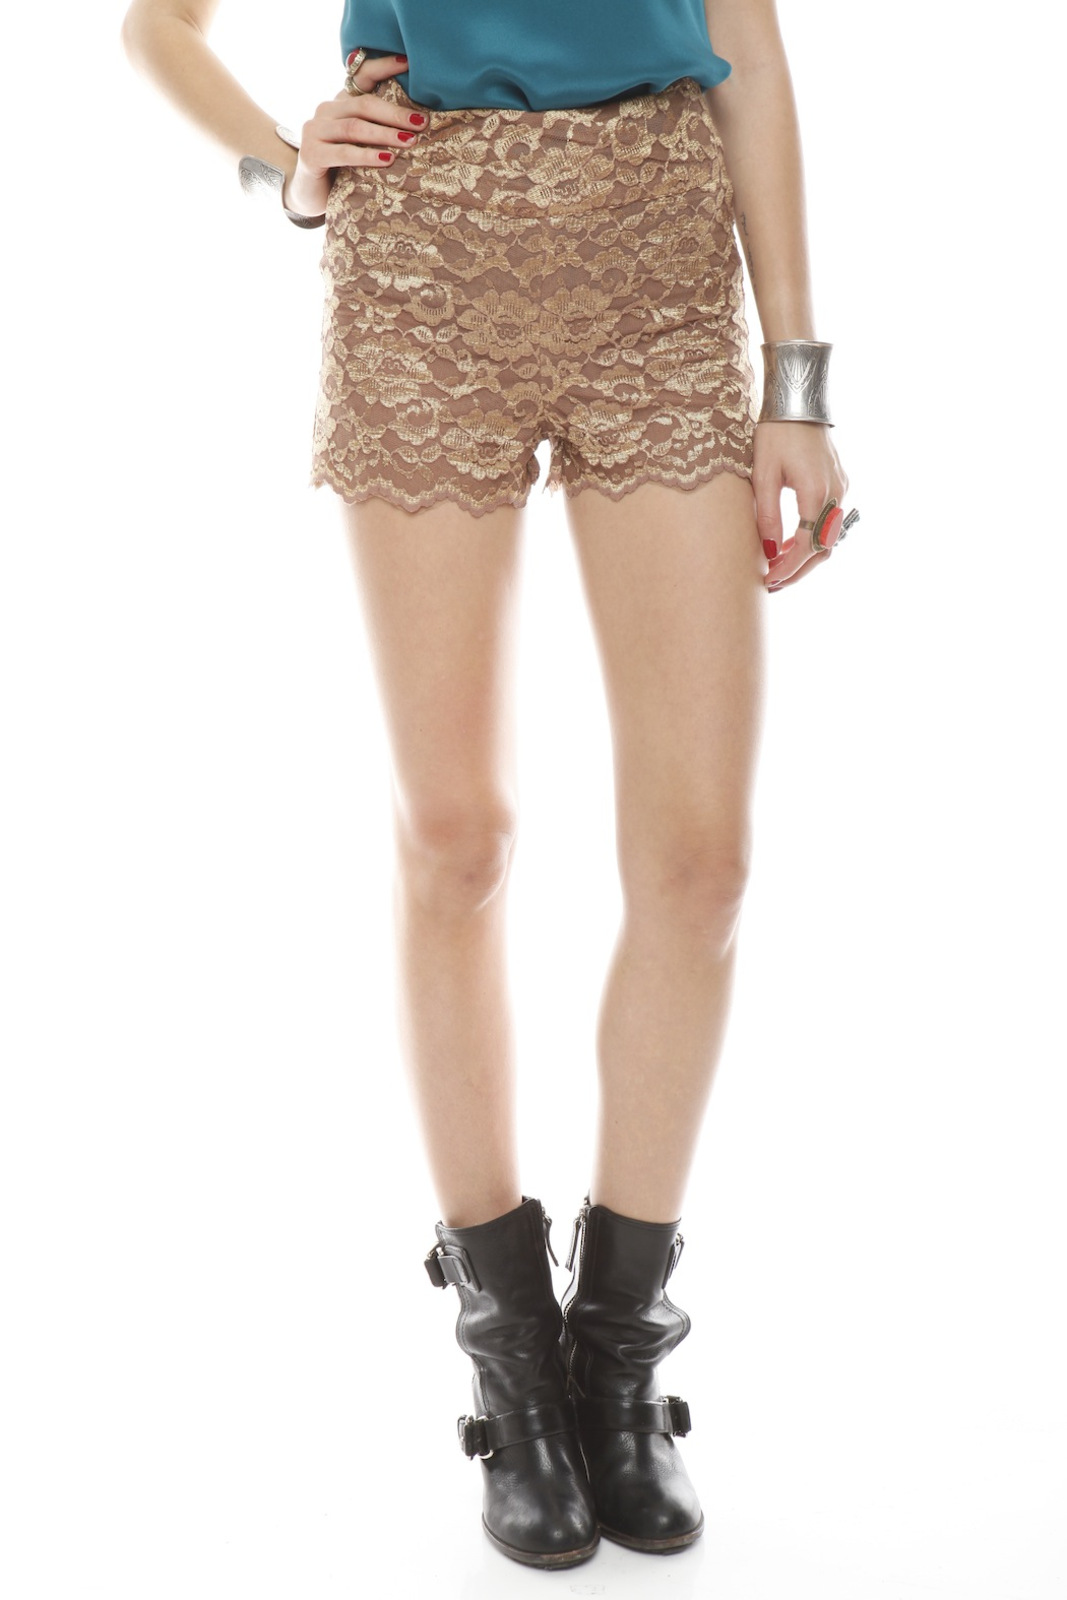 Patricia Del Castillo Lace High-Waist Shorts - Front Cropped Image